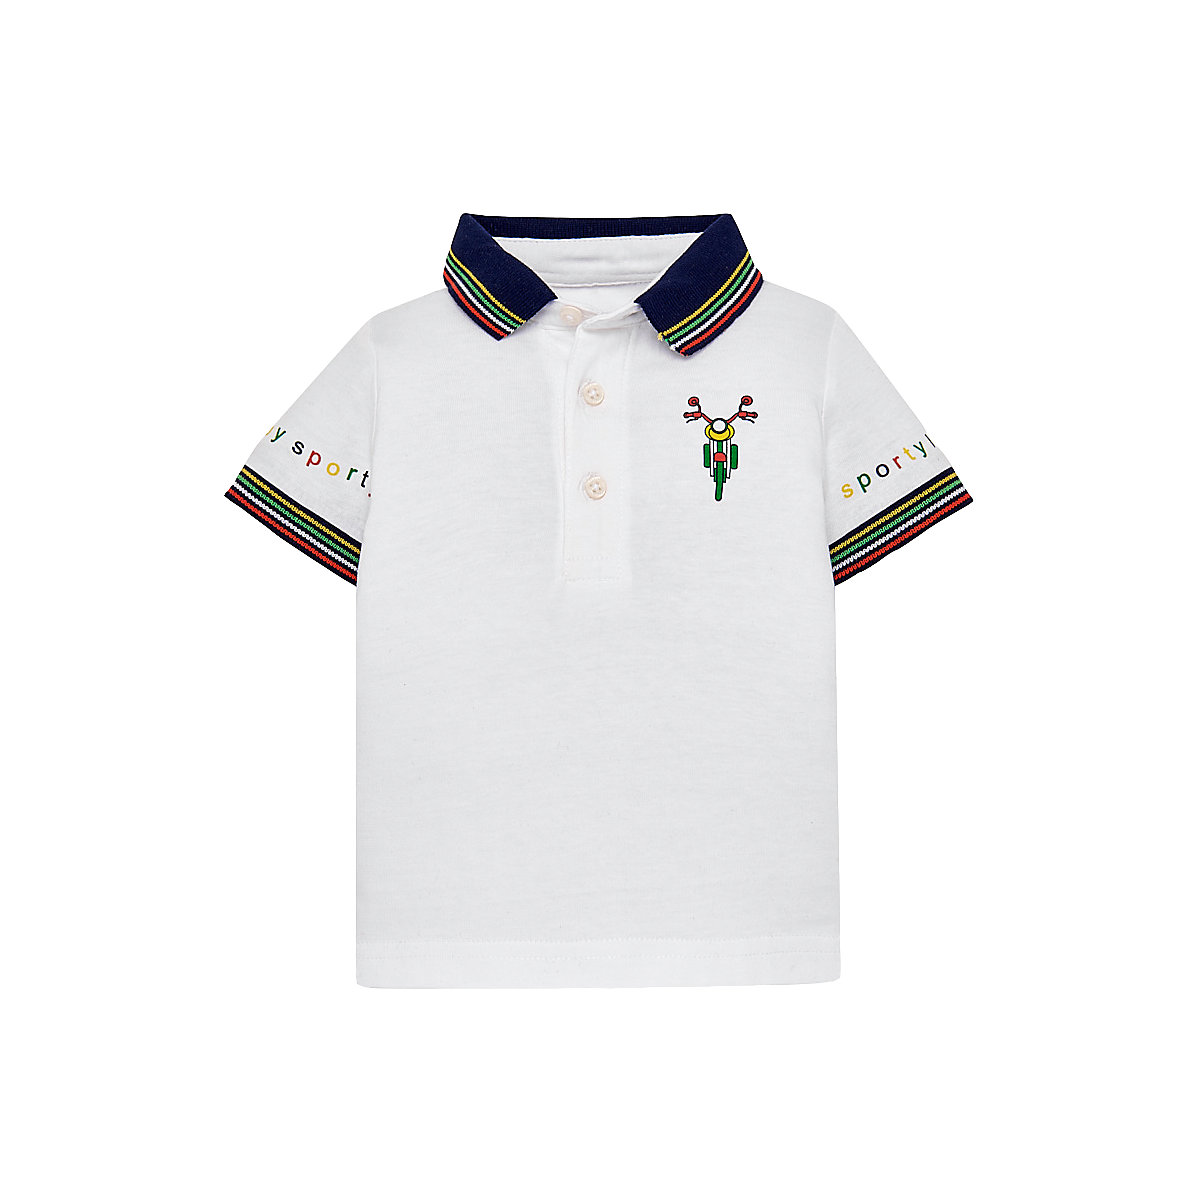 Фото - MAYORAL Polo Shirts 10681448 children clothing t-shirt shirt the print for boys t shirts modis m182m00016 shirt cotton polo for for male for man tmallfs